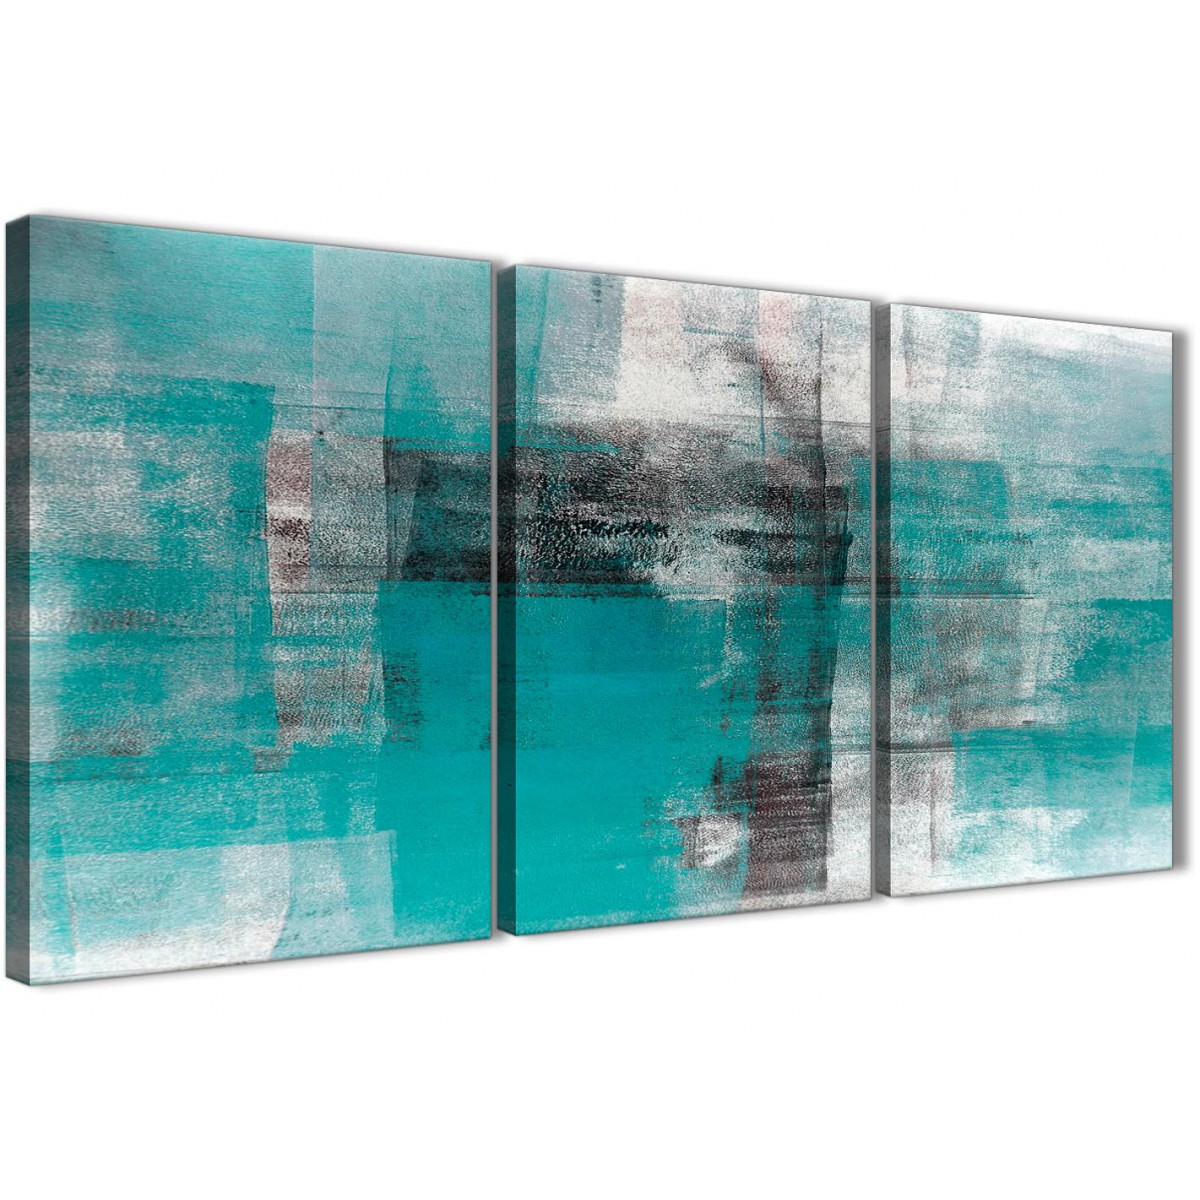 Items Similar To Teal Purple Abstract Flowers Wall Decor: 3 Piece Teal Black White Painting Dining Room Canvas